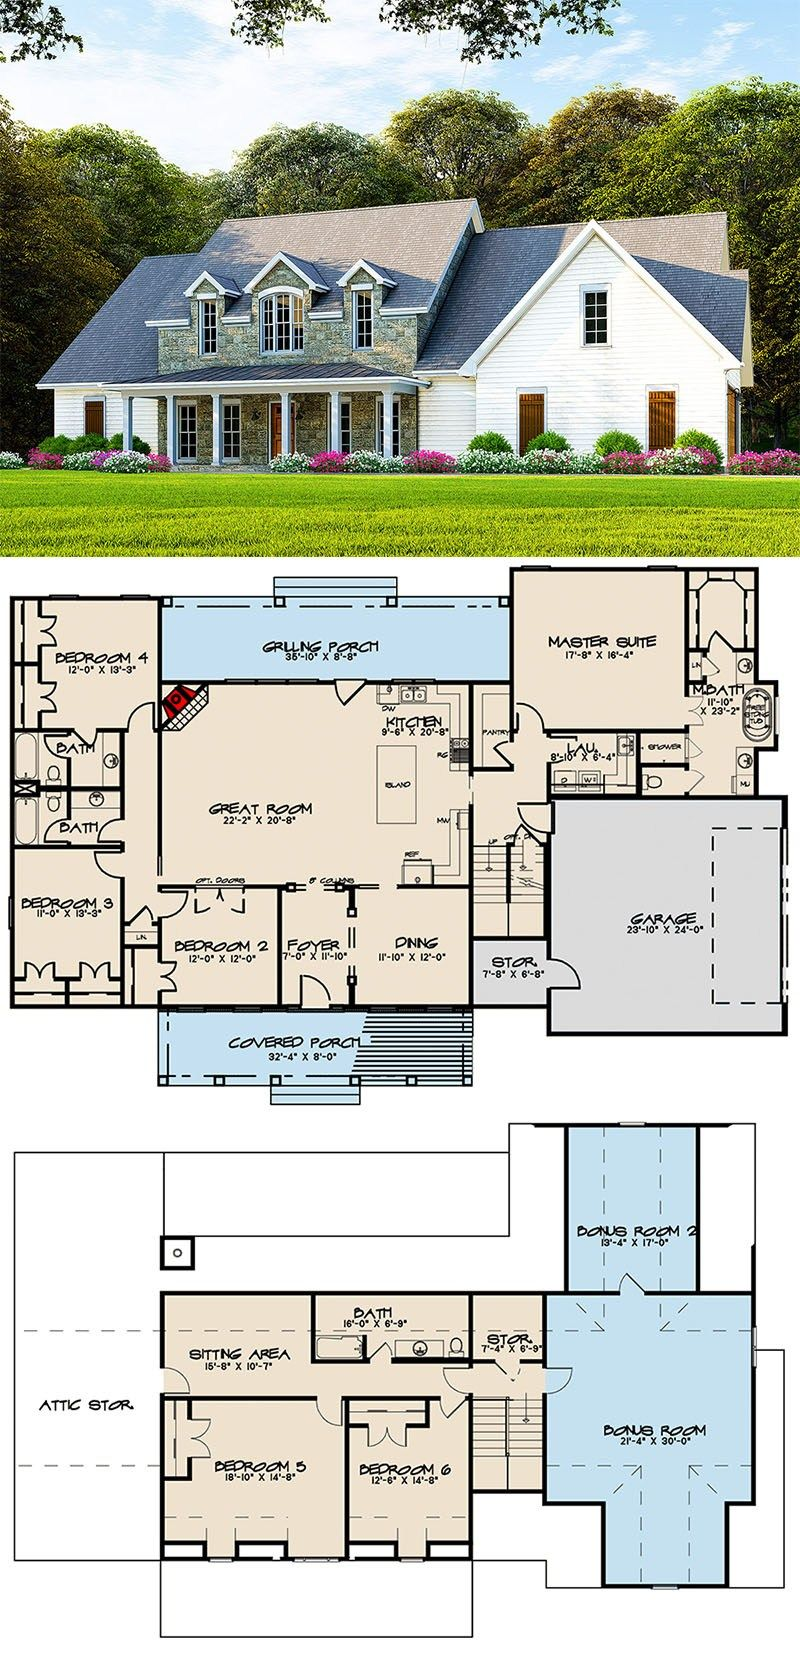 Plan 70604mk Traditional Farmhouse With Two Bonus Rooms Over Garage Pool House Plans House Plans Farmhouse Farmhouse Plans